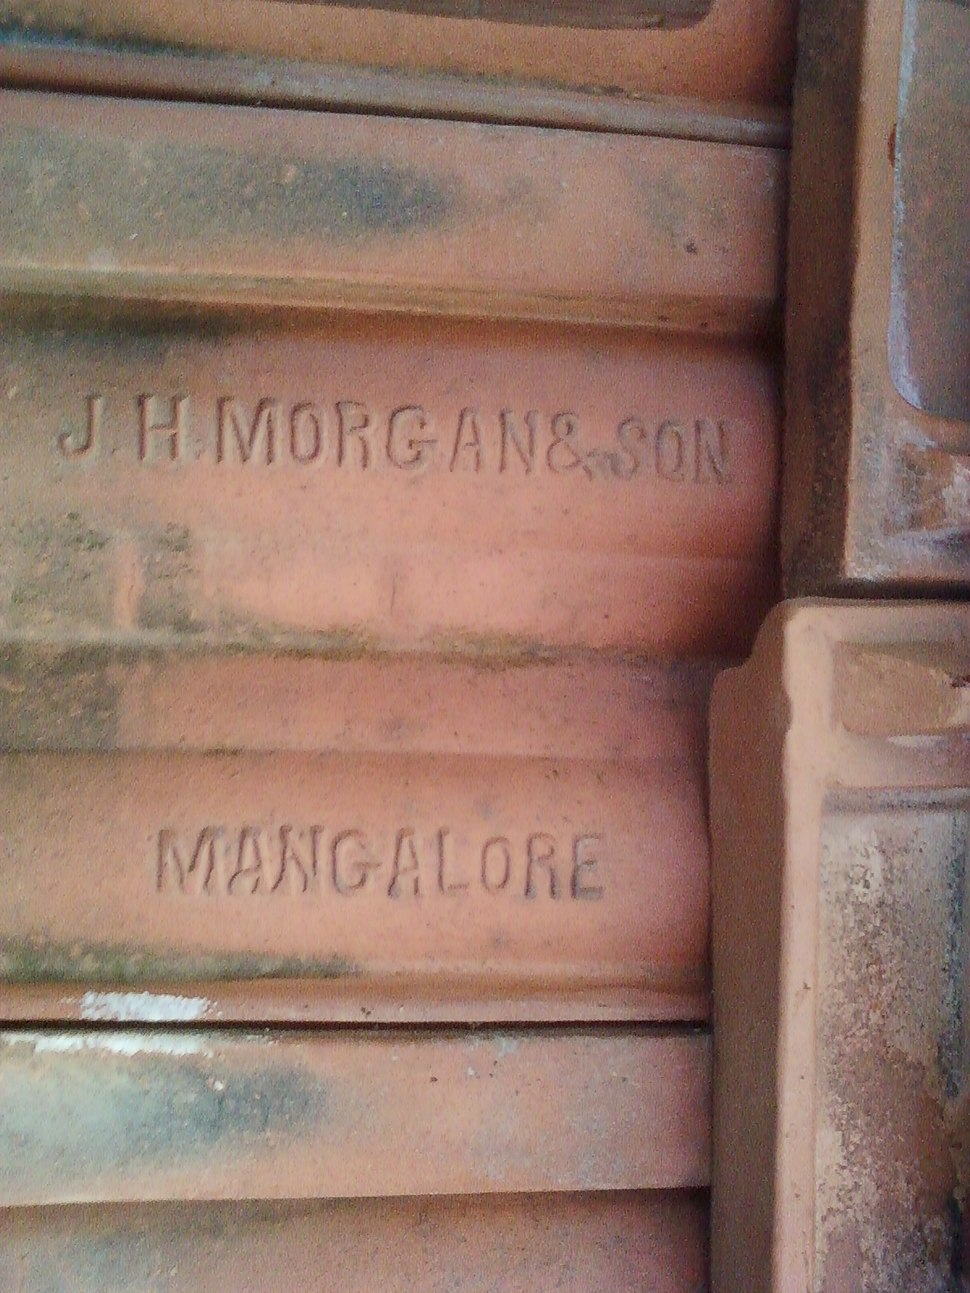 Thayyil Tharavadu roof tile manufactured by J. H. Morgan %26 Sons Mangalore 1868